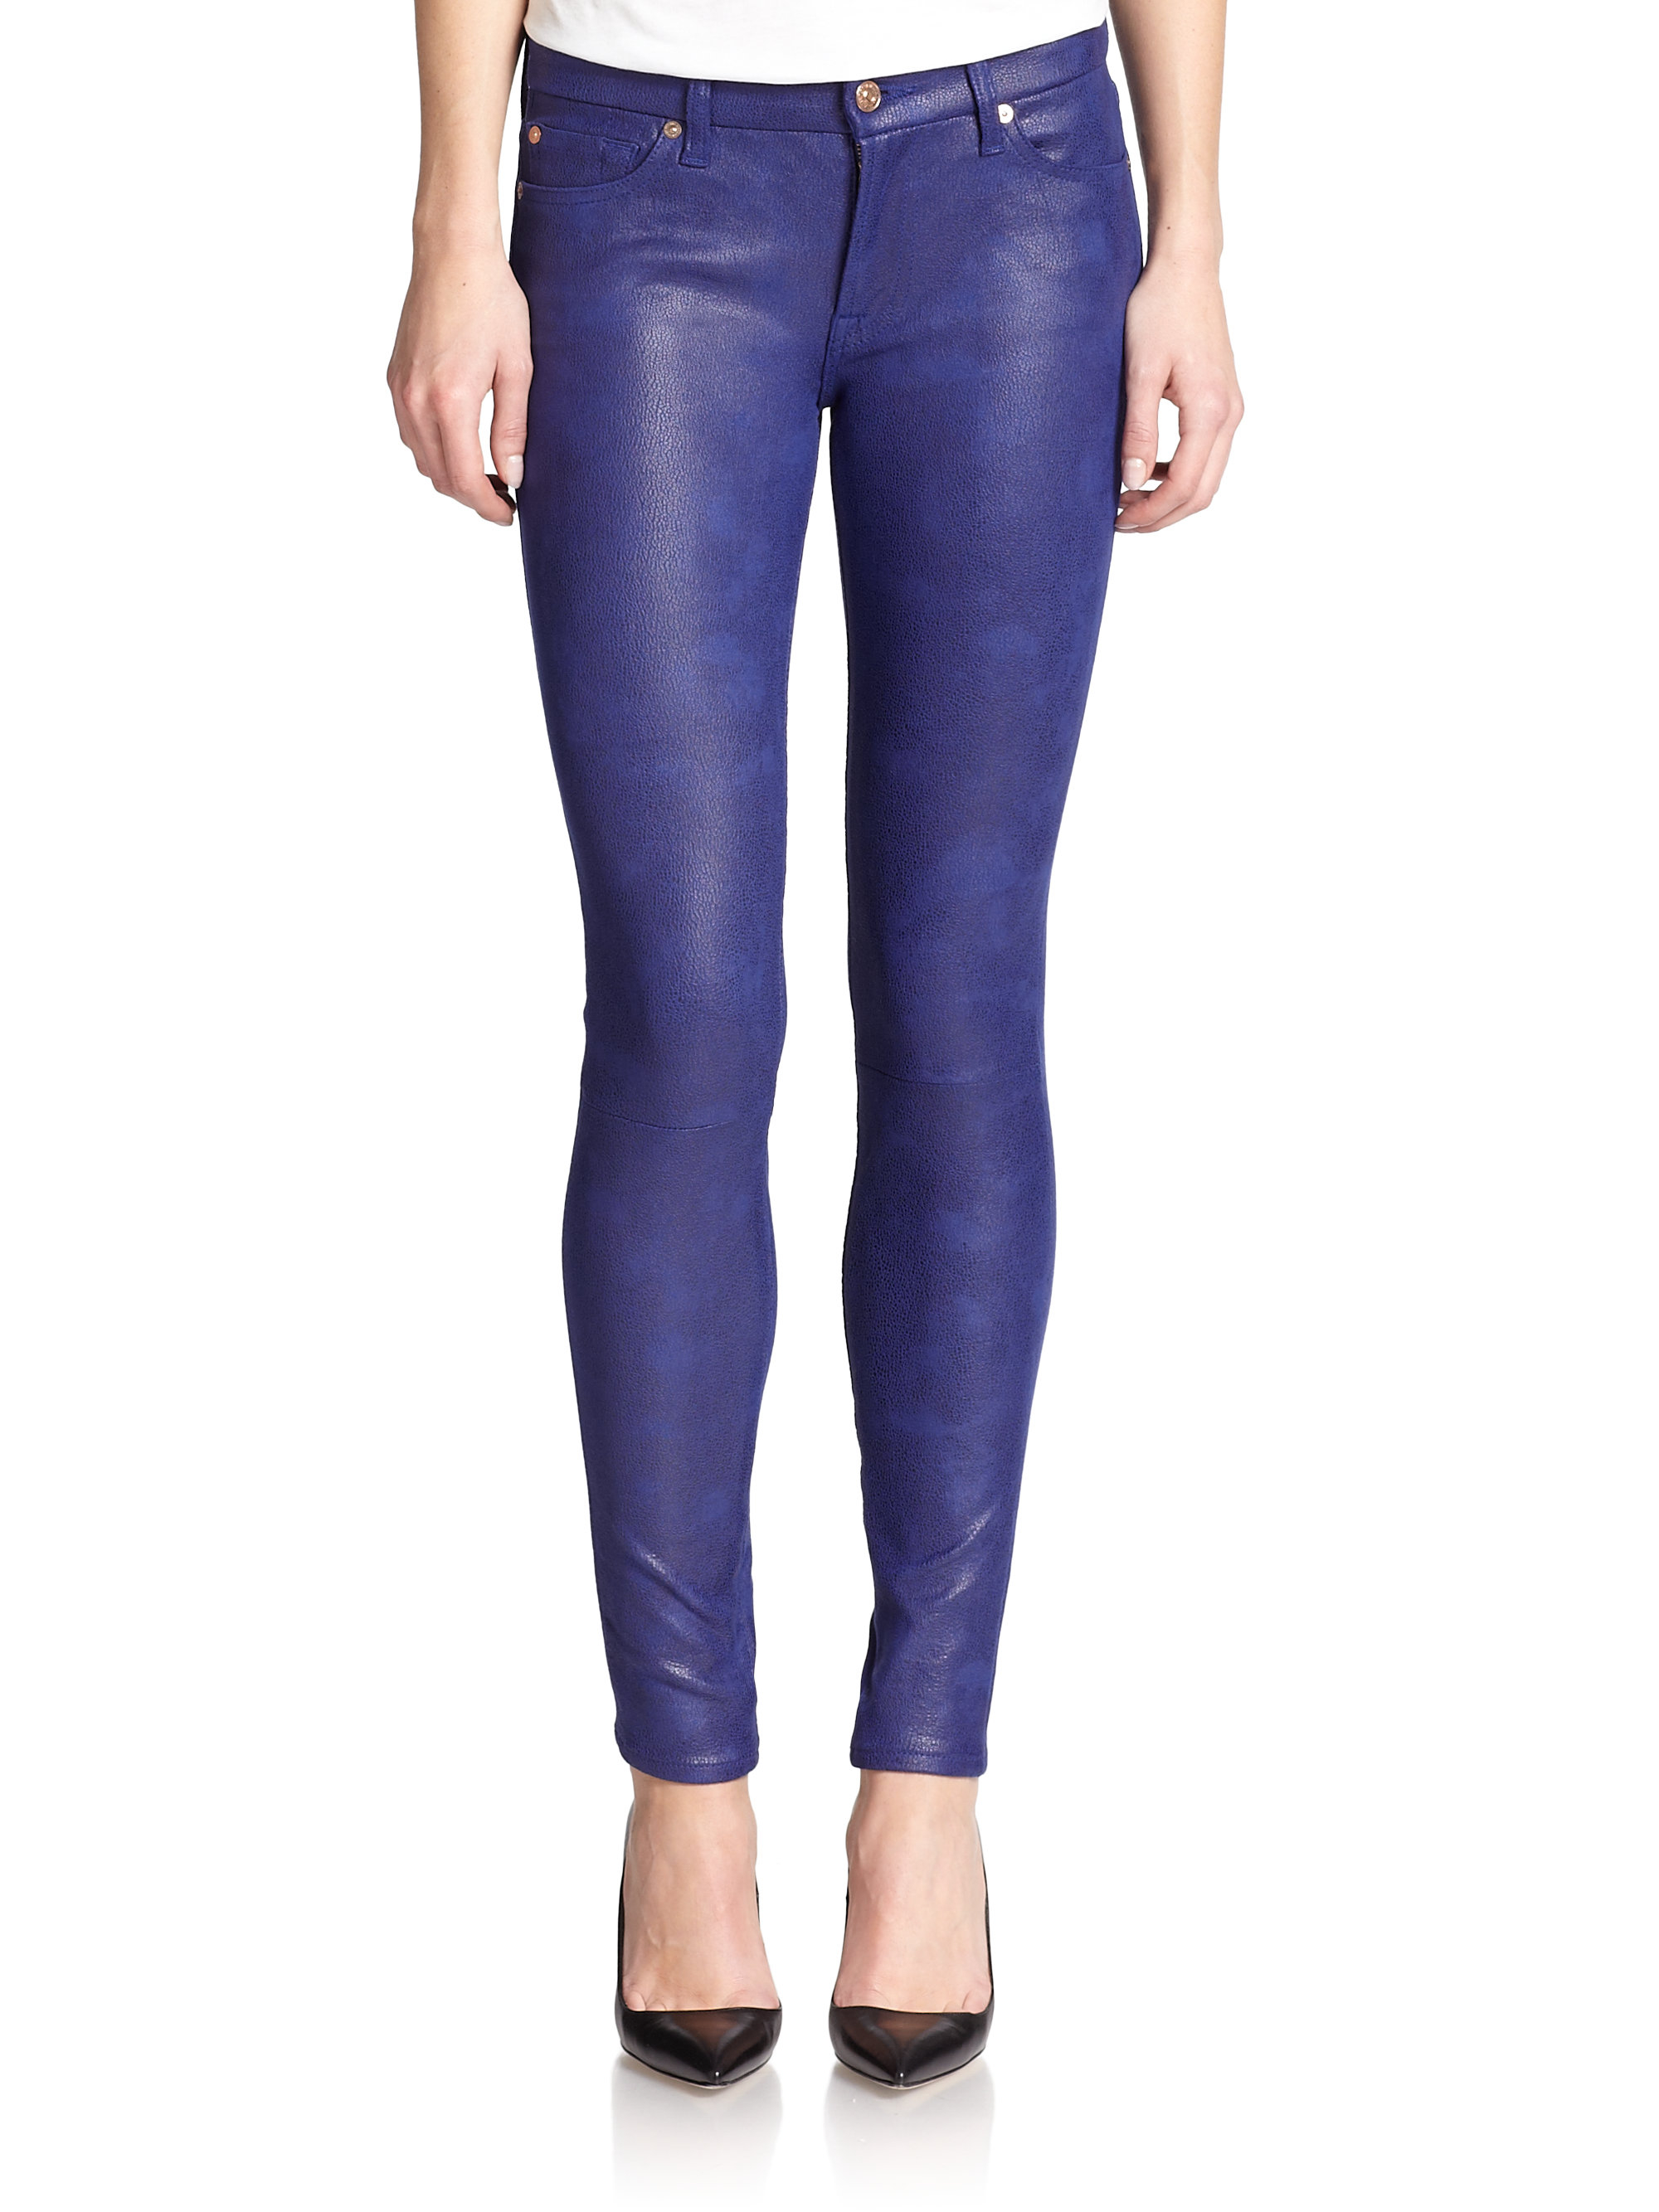 7 for all mankind Crackle Coated Skinny Jeans in Blue | Lyst